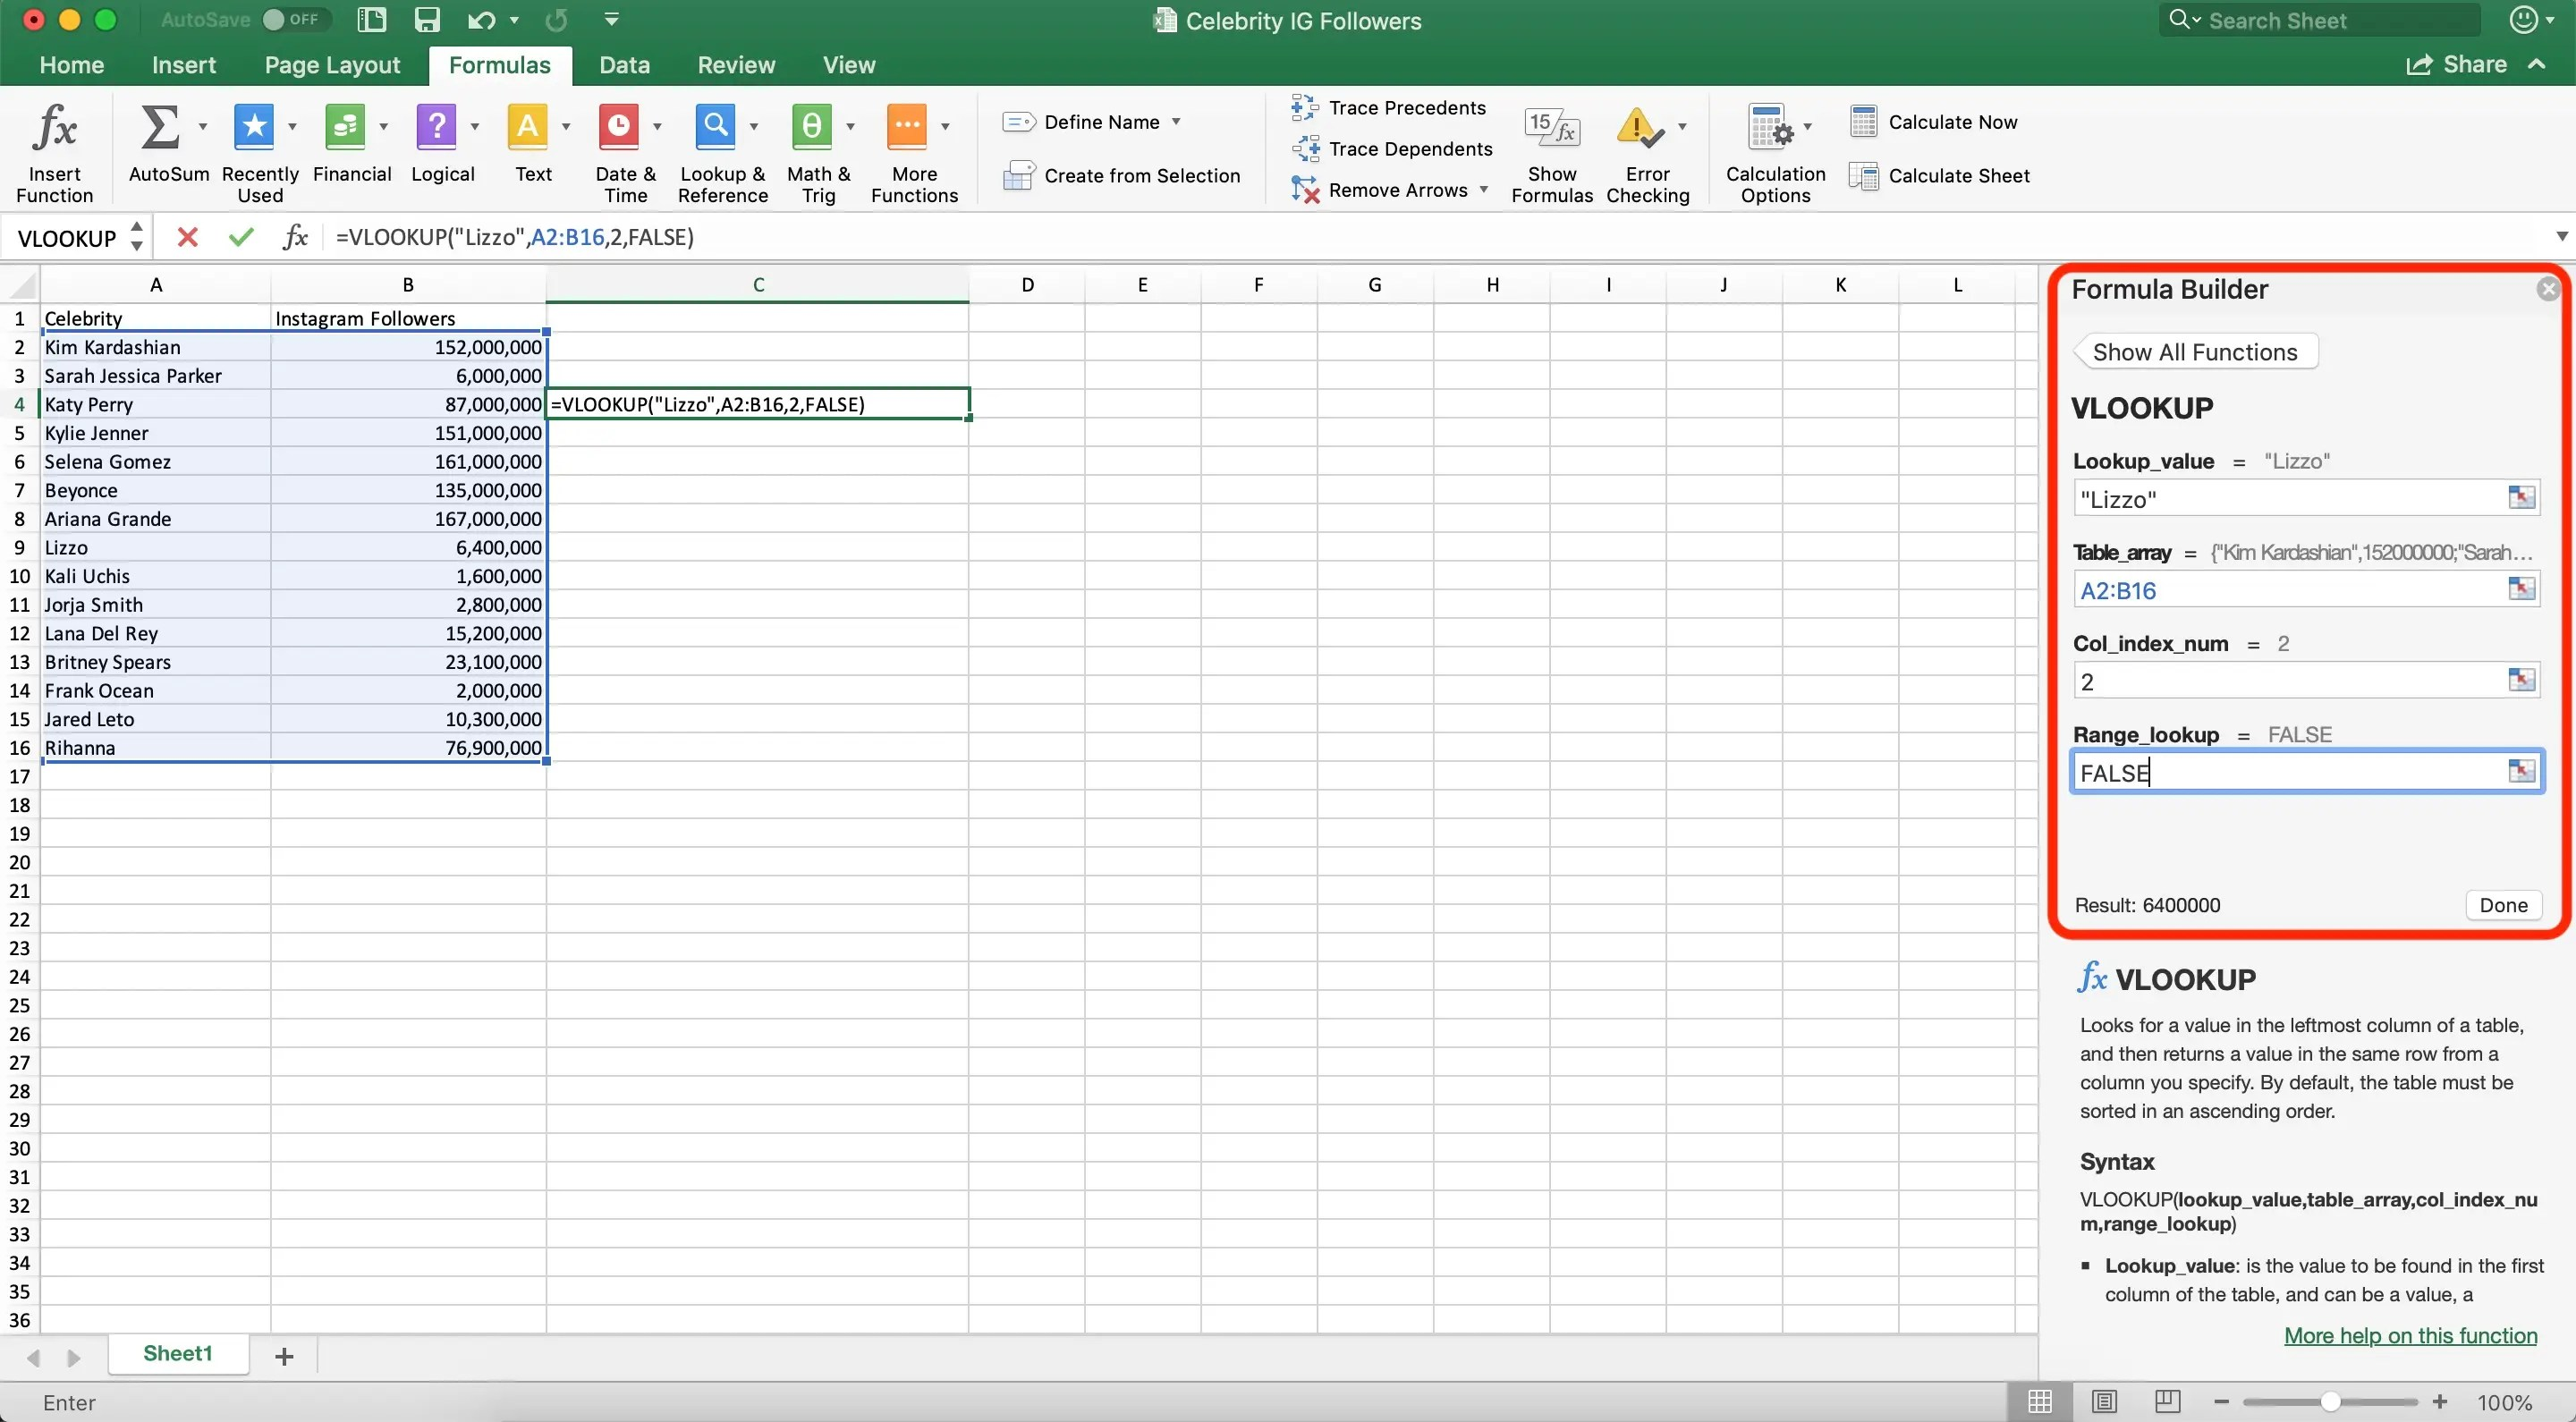 How To Use The Vlookup Function In Microsoft Excel To Find